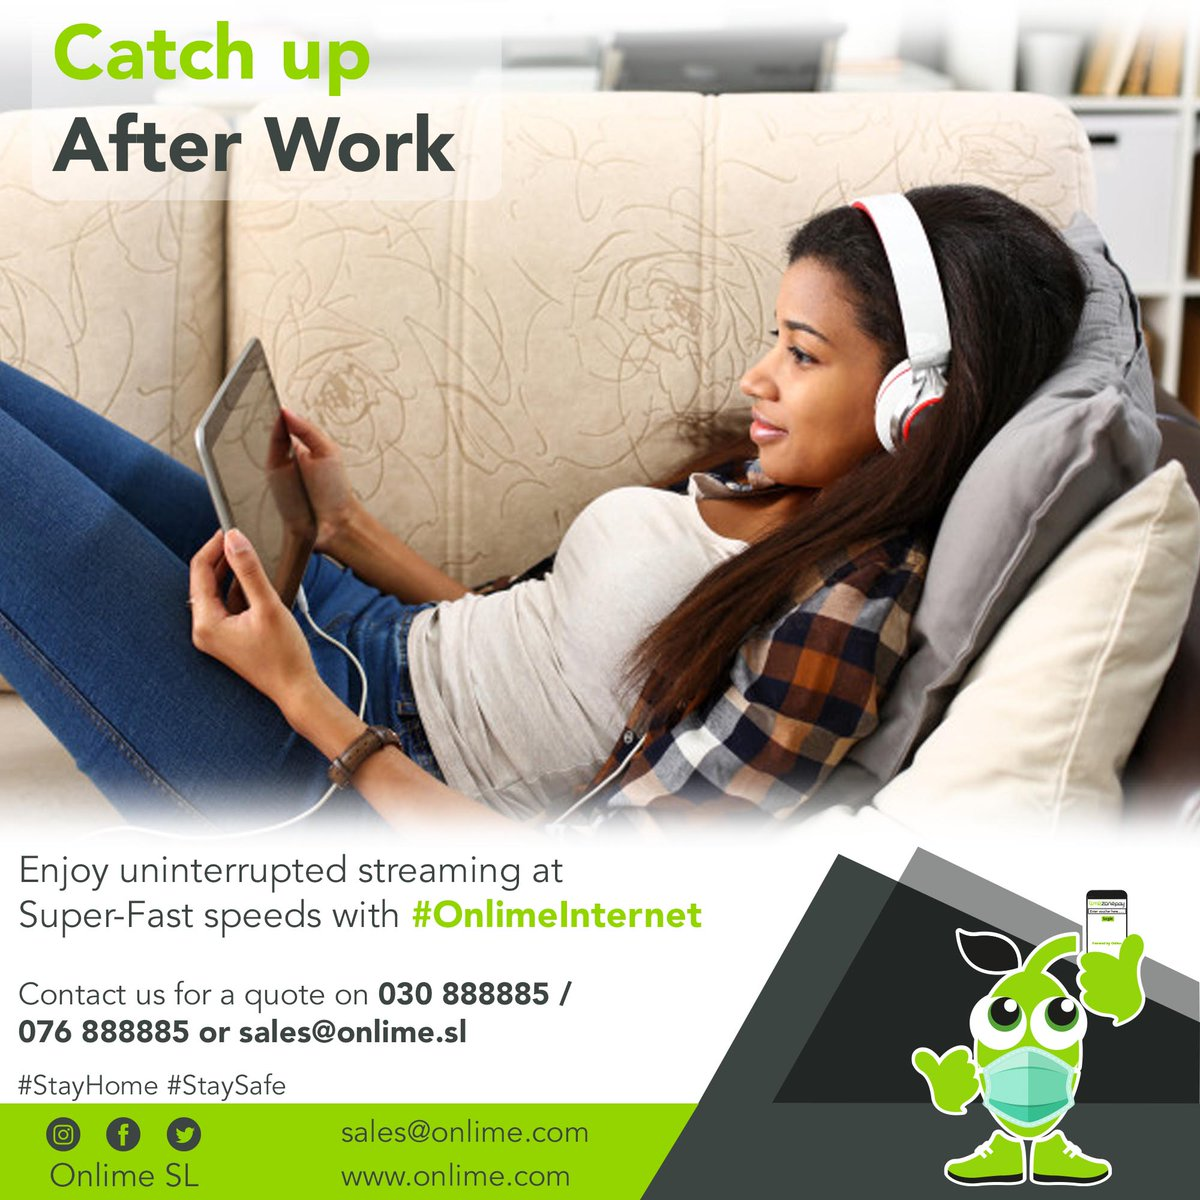 If you are an employee, you will probably need internet to catch up with your favourite shows online after work. Enjoy uninterrupted streaming at Super-Fast Speeds with #OnlimeInternet Call 076888885 / 030888885 or email sales@onlime.sl for more info.  #SierraLeone #SaloneTwitter https://t.co/AZDYPm6o9R